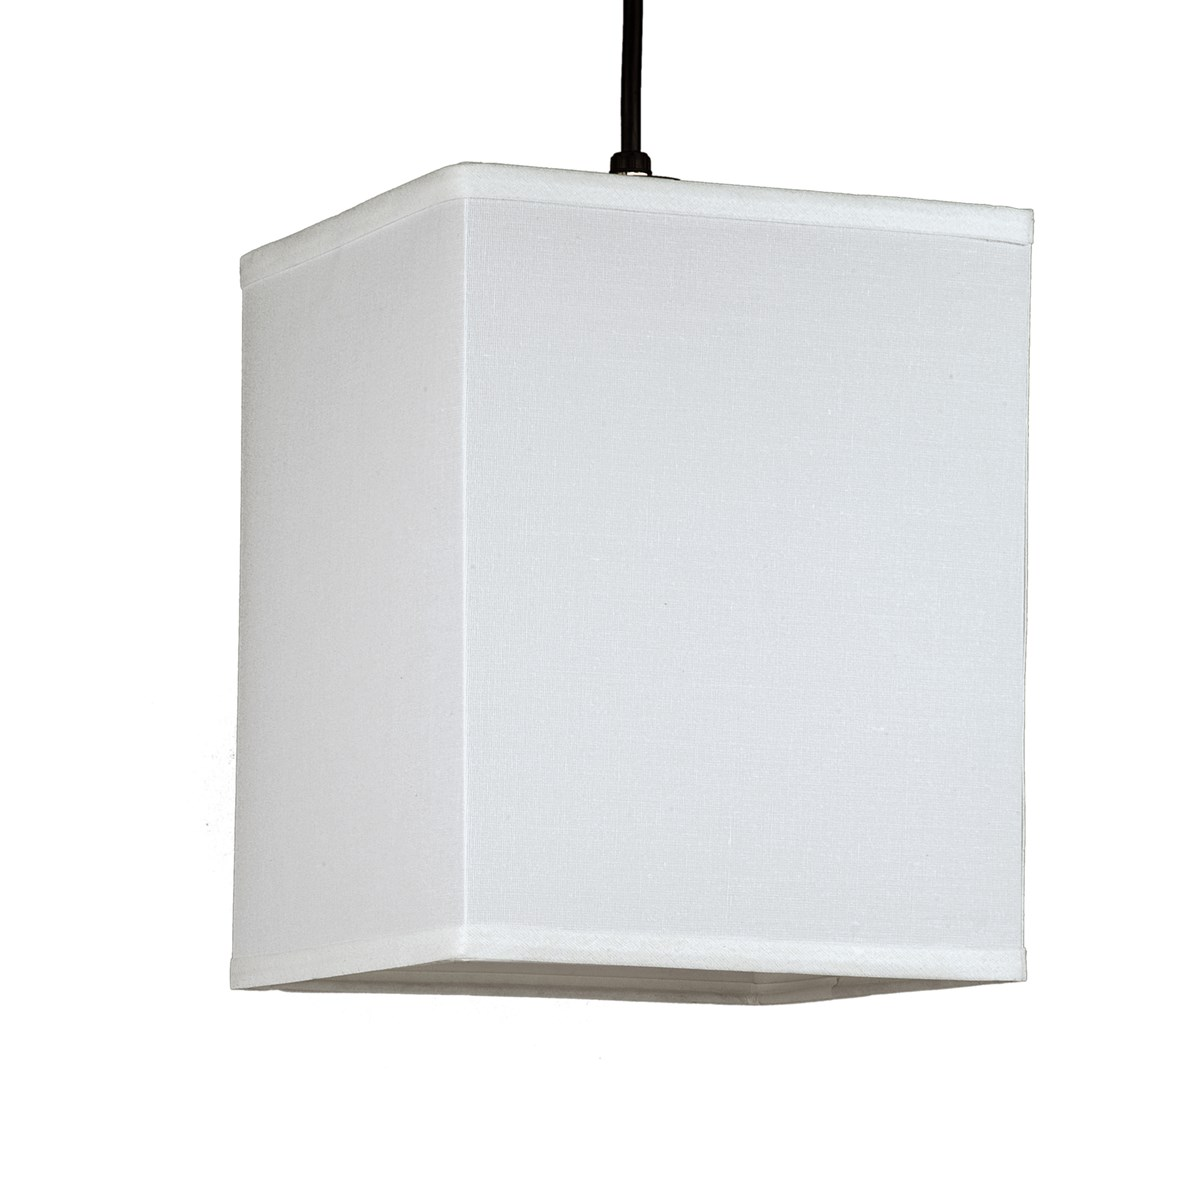 Lights up rex small square pendant light pendant fixture neenas lights up rex small square pendant light pendant fixture neenas lighting aloadofball Images